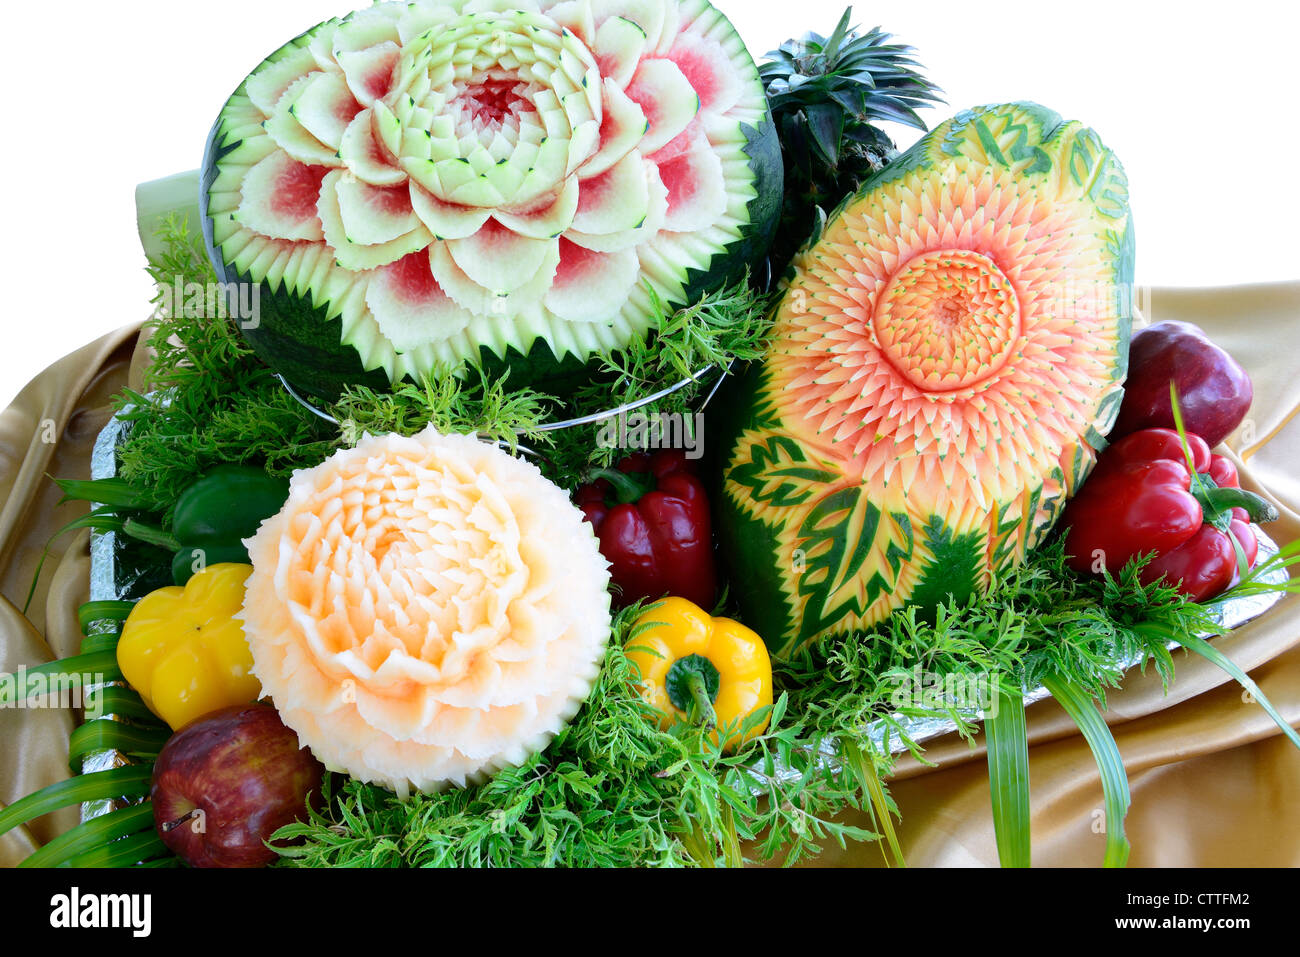 Fruit carvings by thai chef is on the buffet table isolated on white